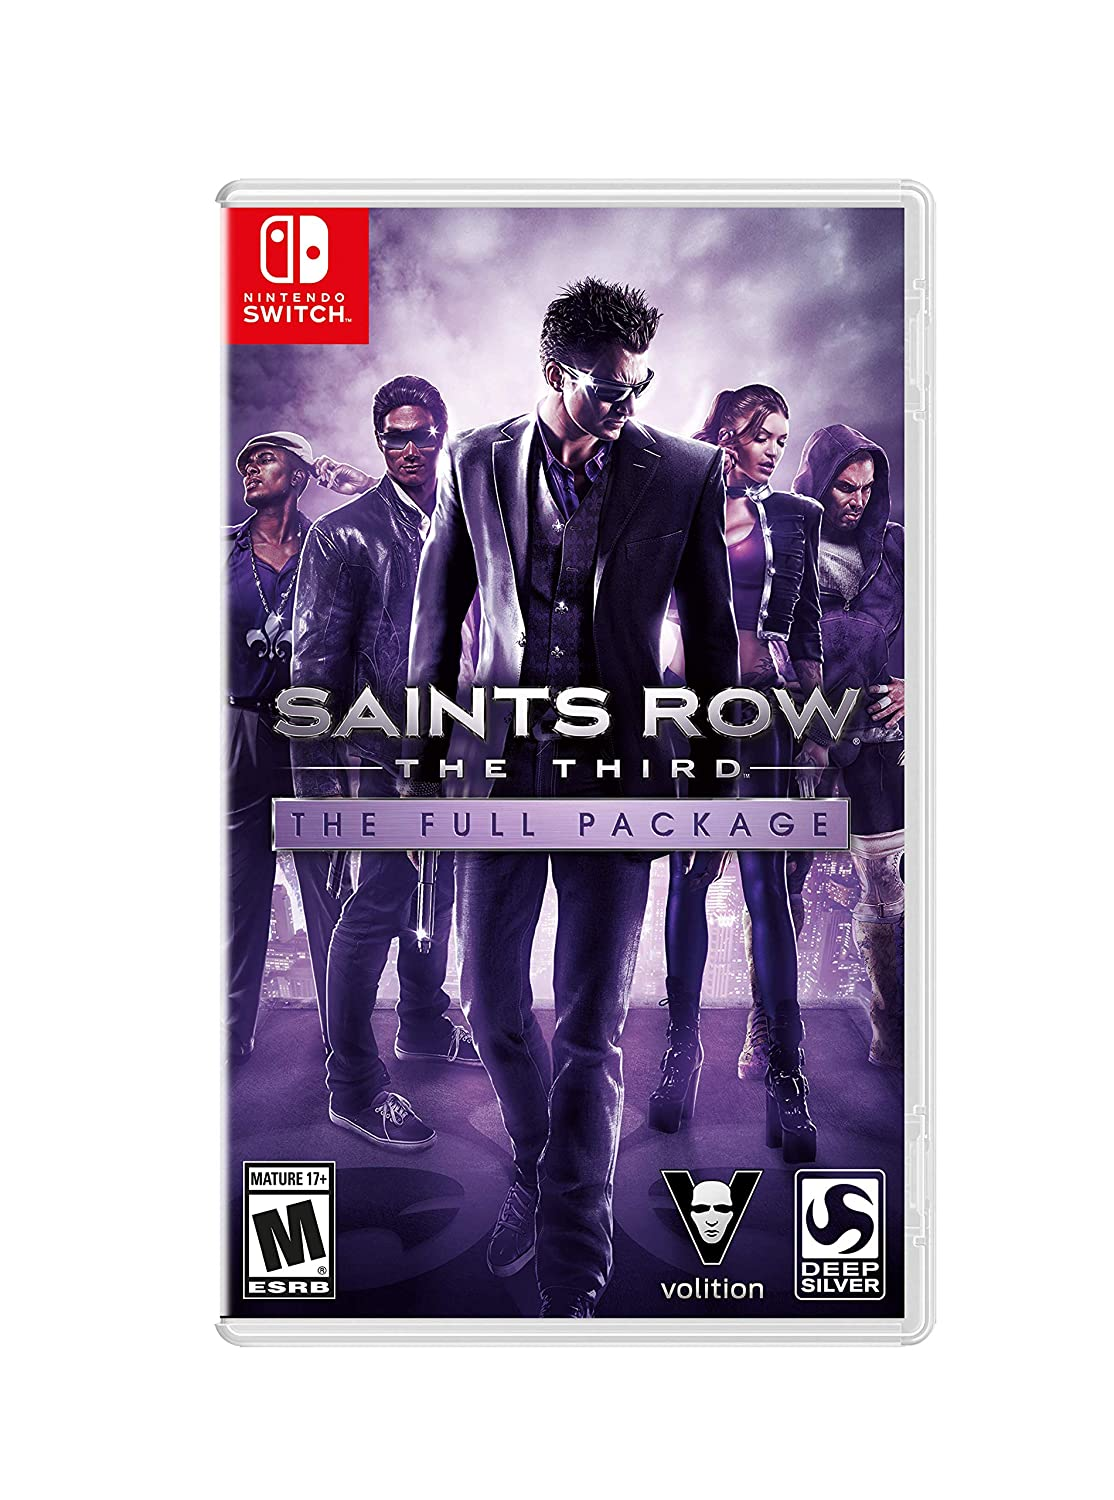 Saints Row - The Third for Nintendo Switch [USA]: Amazon.es: Thq Nordic: Cine y Series TV